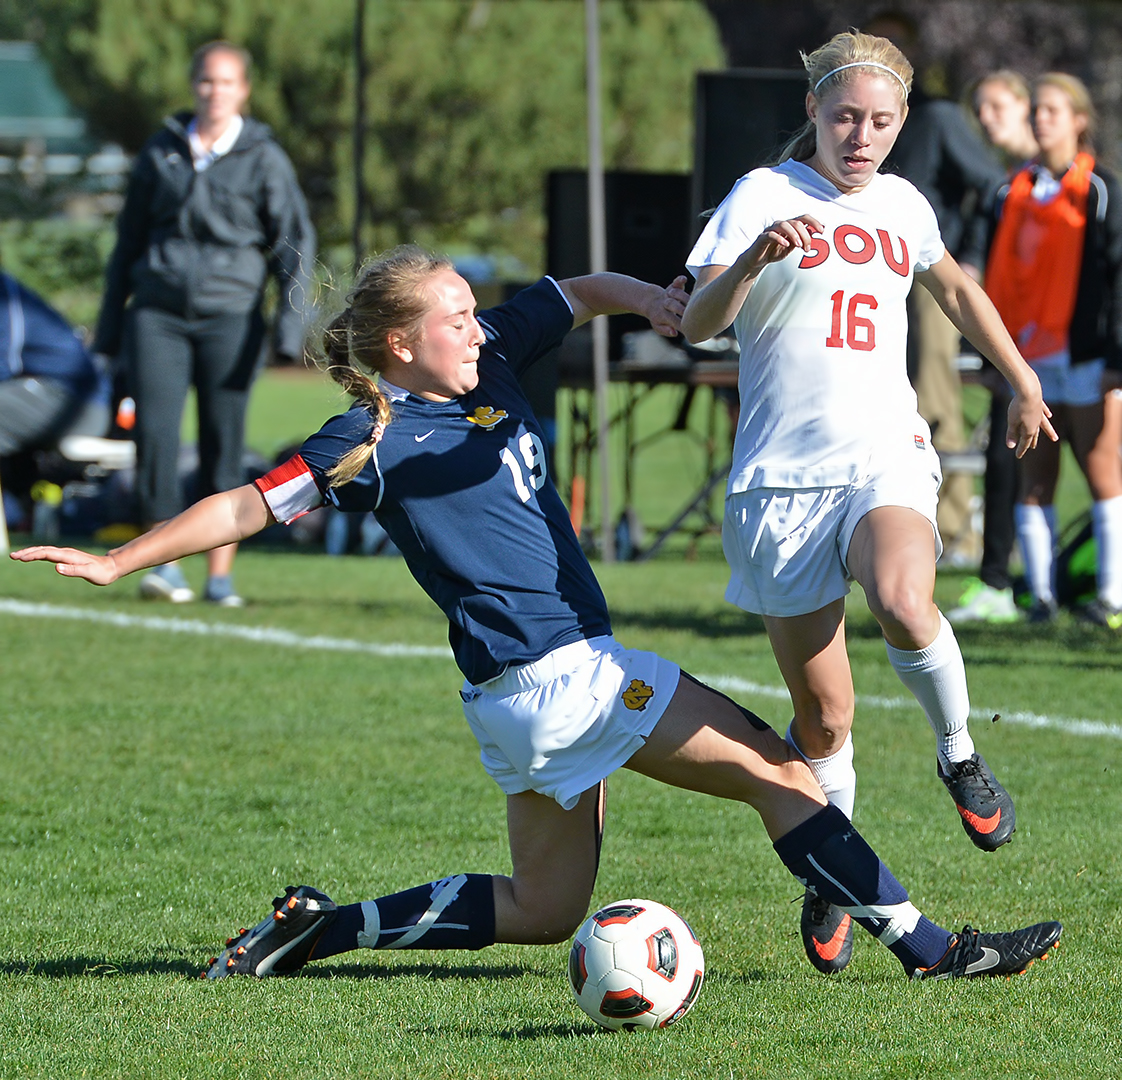 SOU Women's Soccer vs Northwest Julie Zamzow